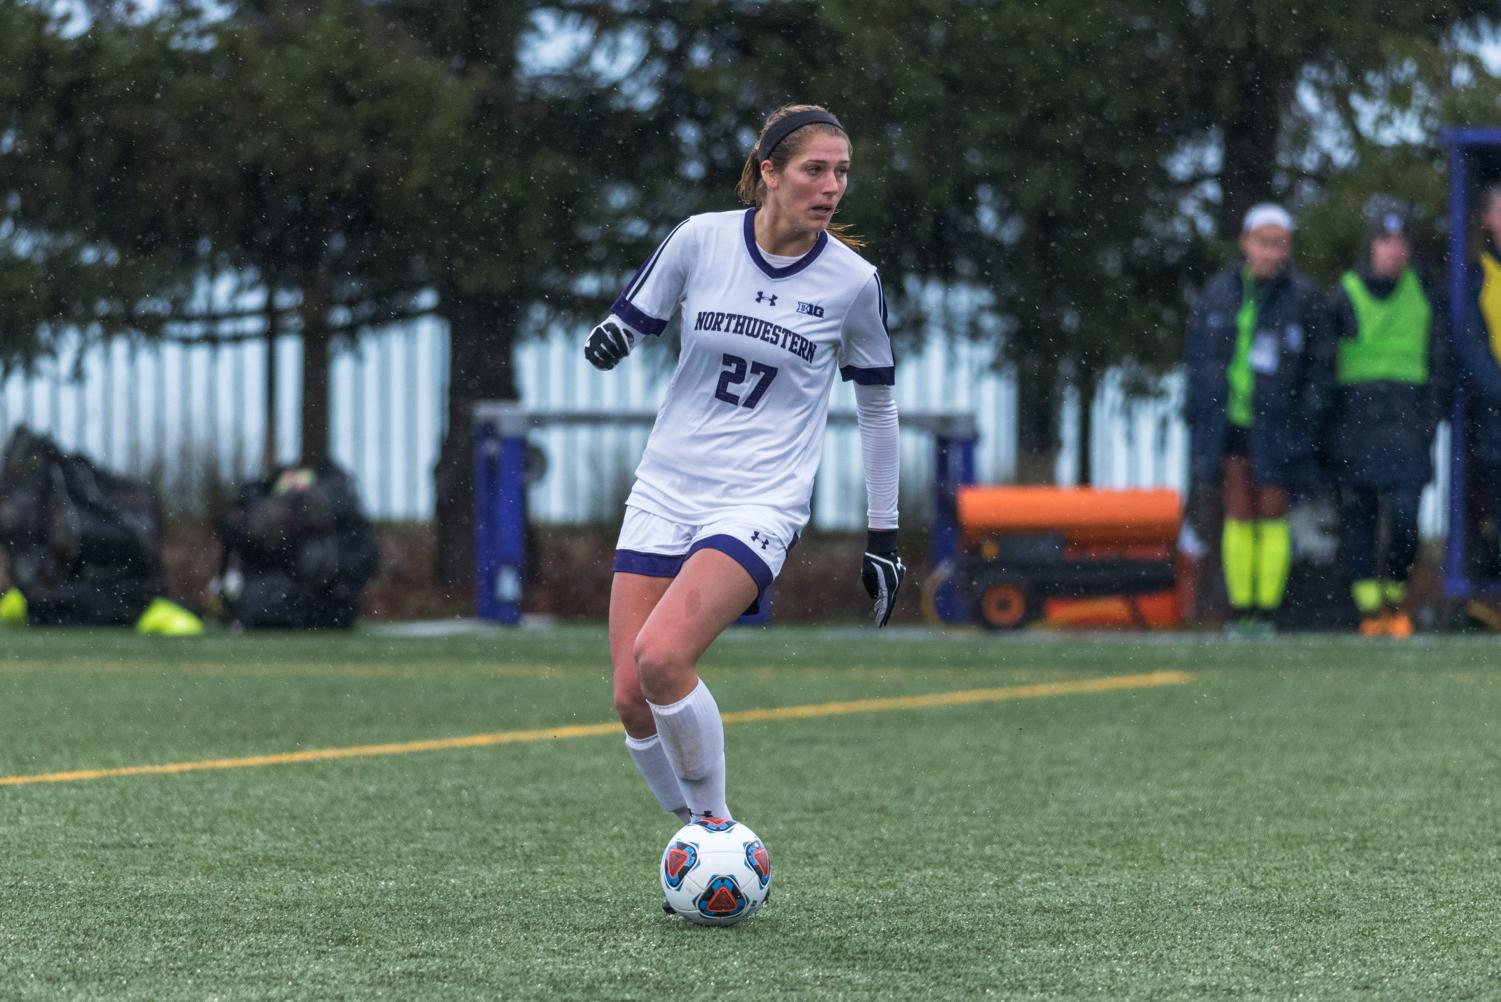 (Daily file photo by David Lee) Kayla Sharples surveys the pitch. The senior defender has helped the Northwestern defense allow only five goals all season.